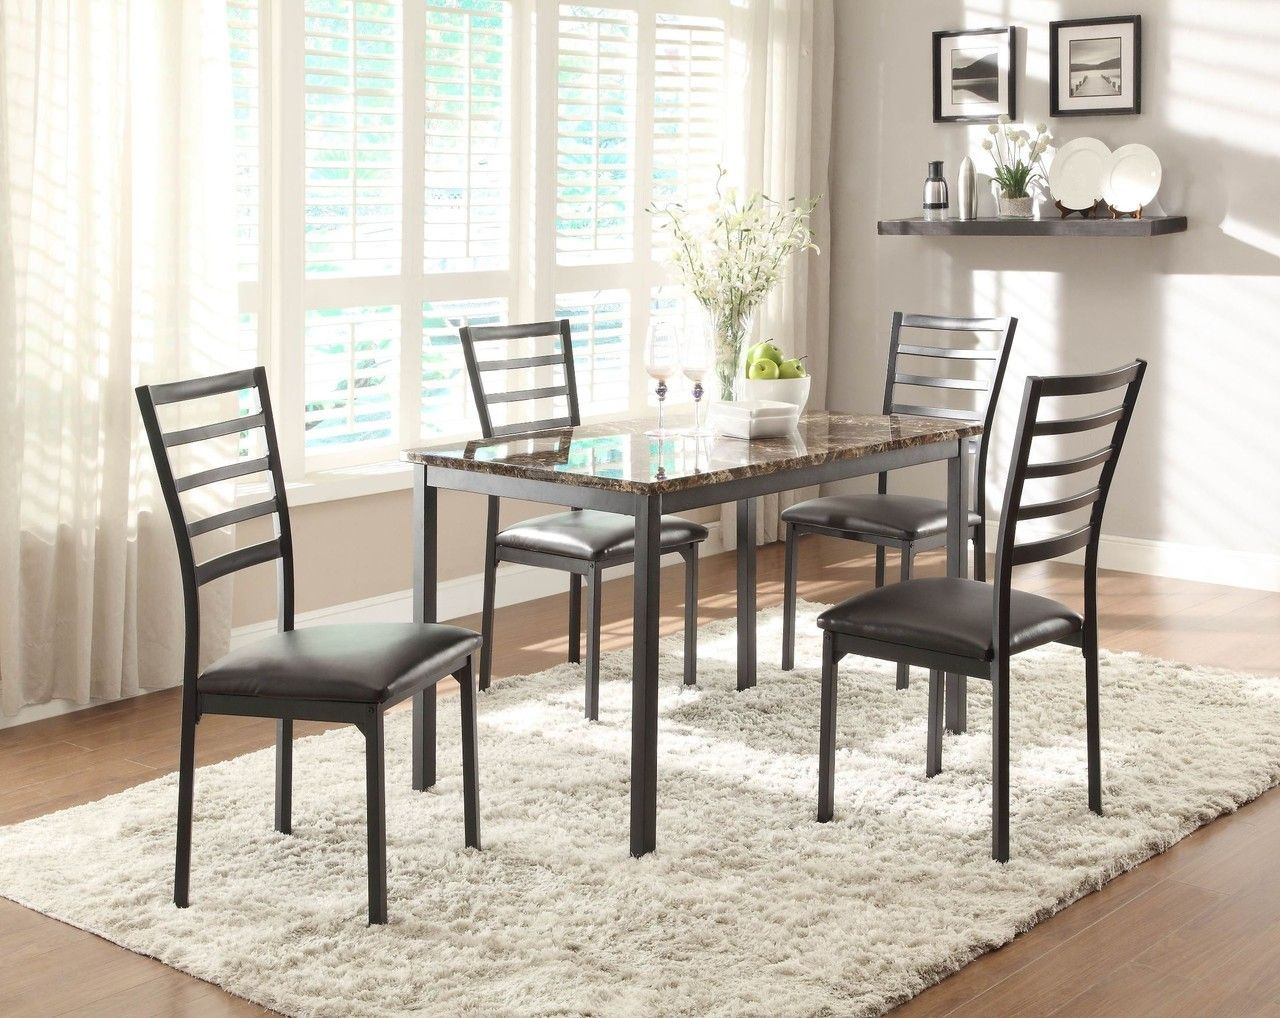 Homelegance Flannery Dining Room Table Set 5038 48 Savvy